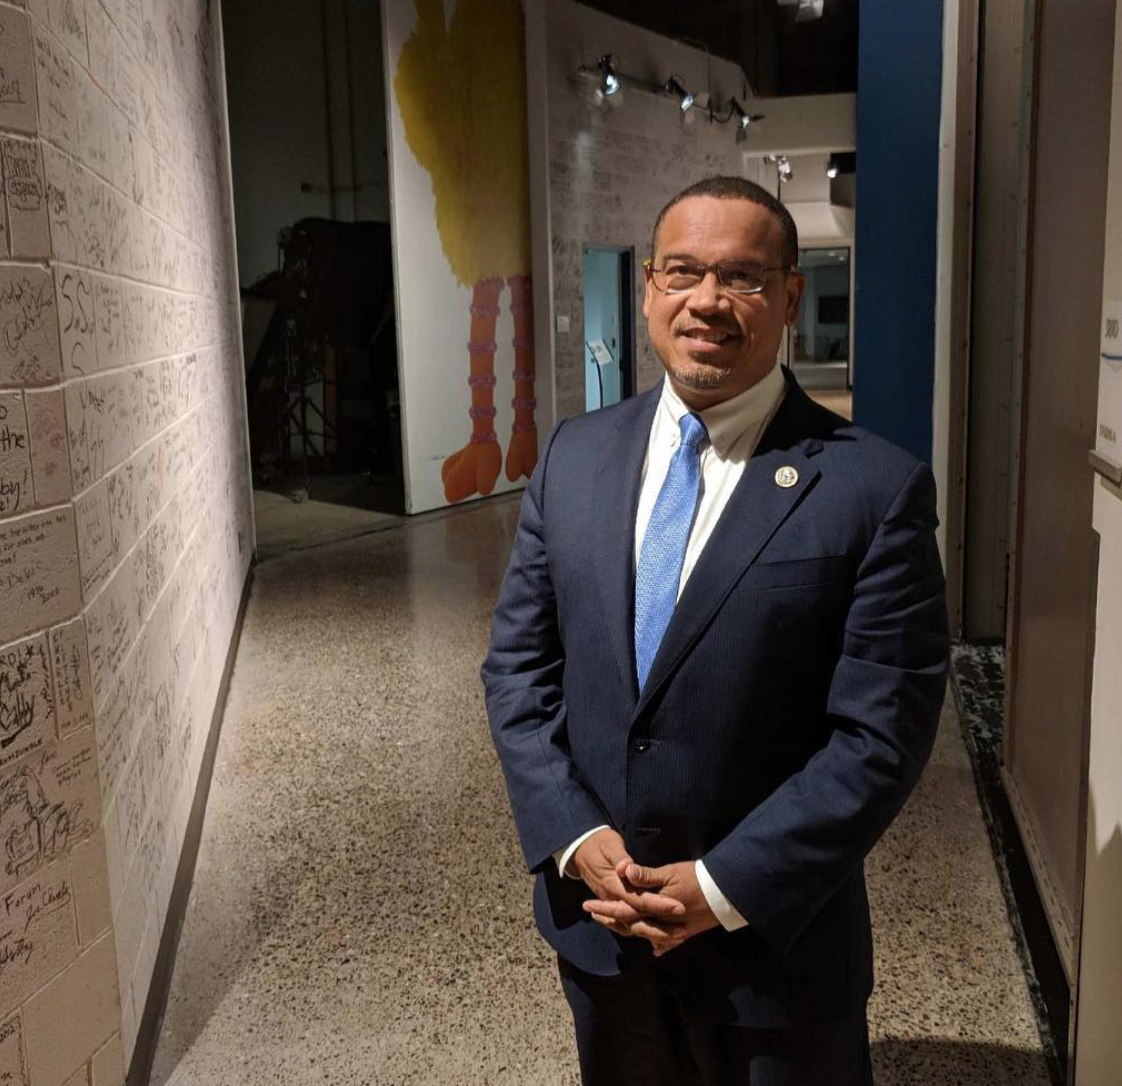 Some See A Double Standard in the Abuse Allegations Against Minn. Rep. Keith Ellison